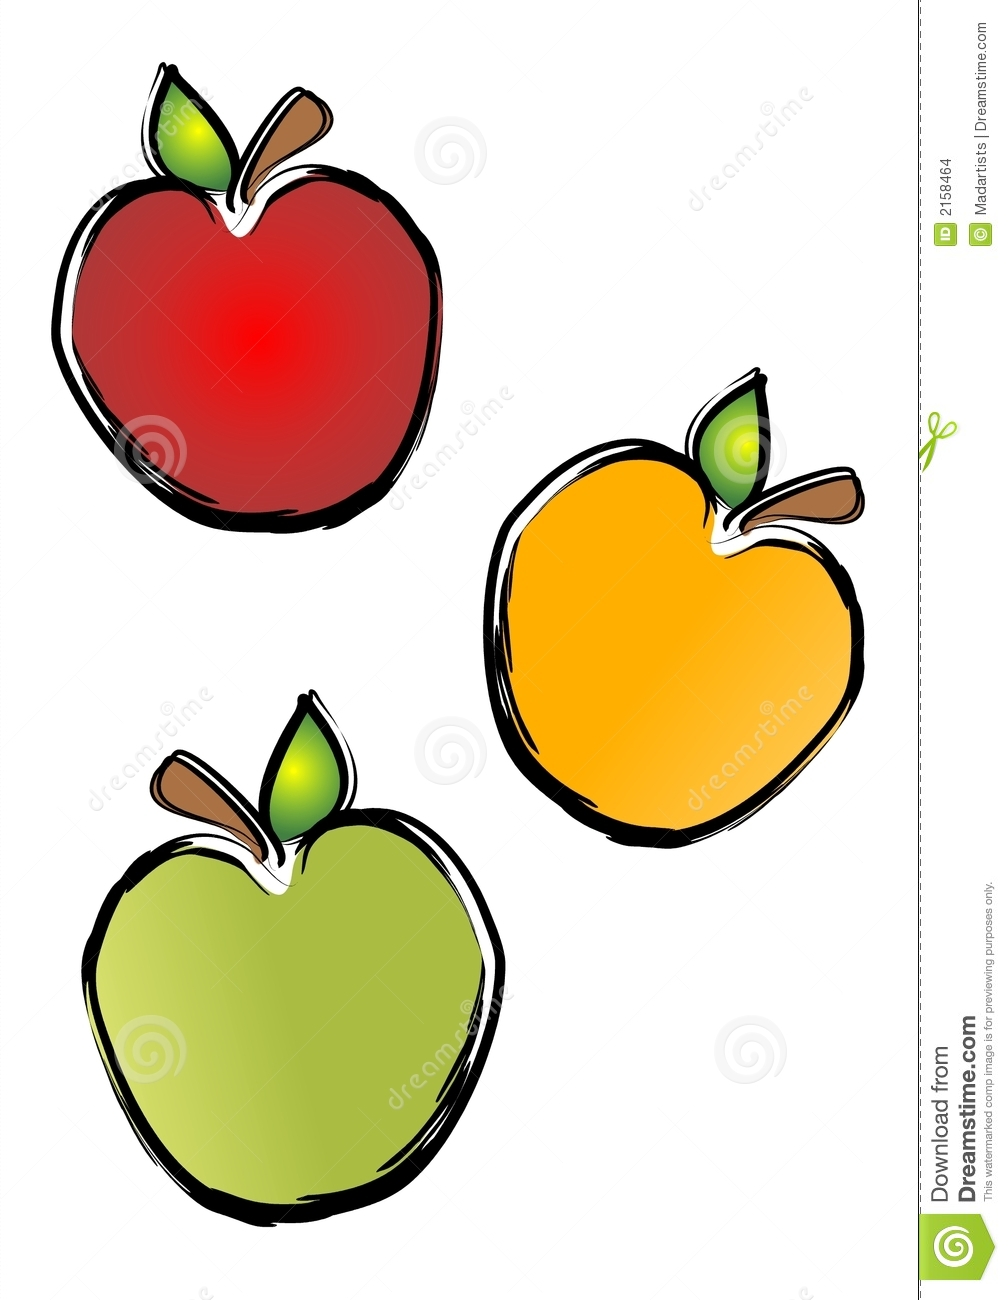 Apple Clip Art Illustrations Stock Images - Image: 2158464